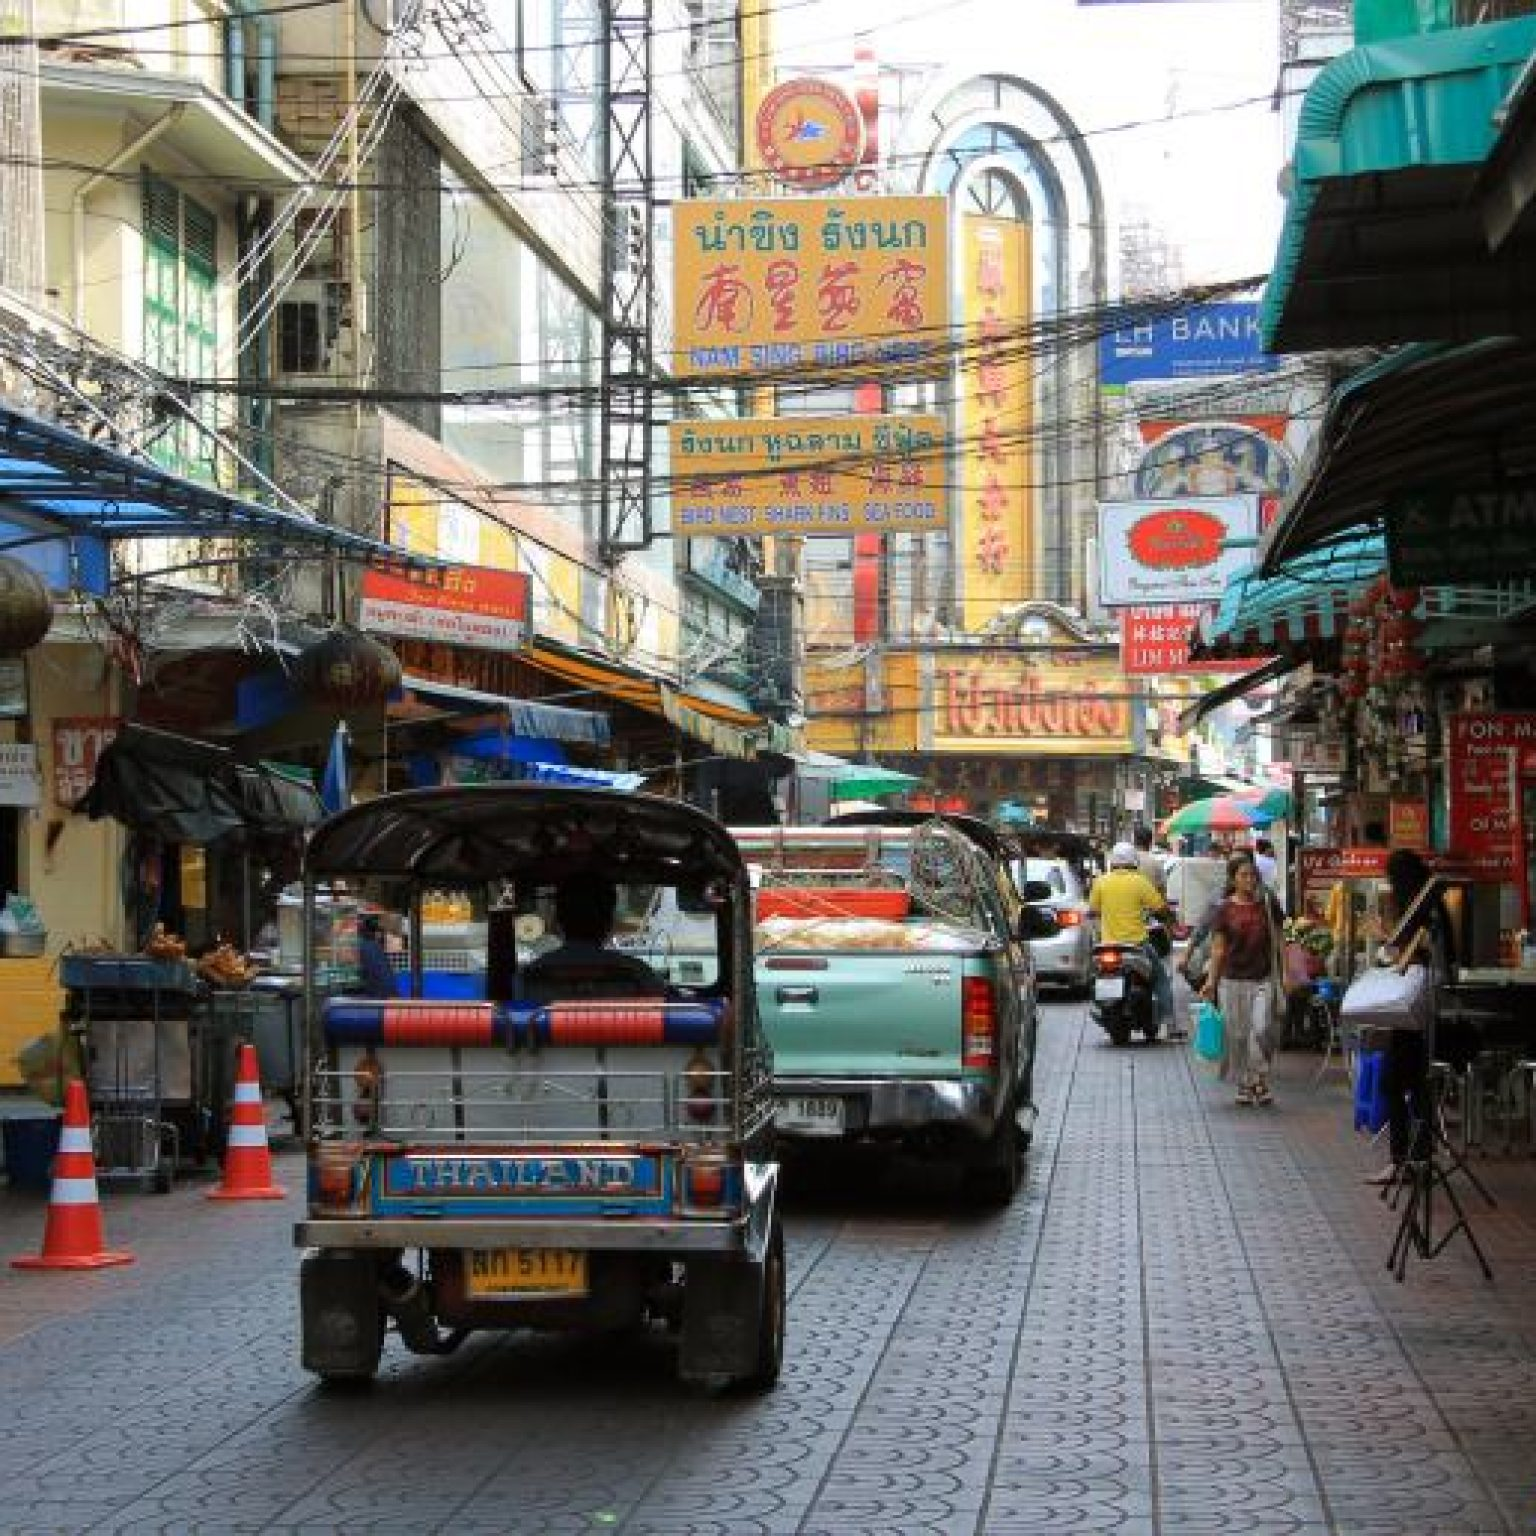 Attractions in Bangkok: Chinatown and Little India